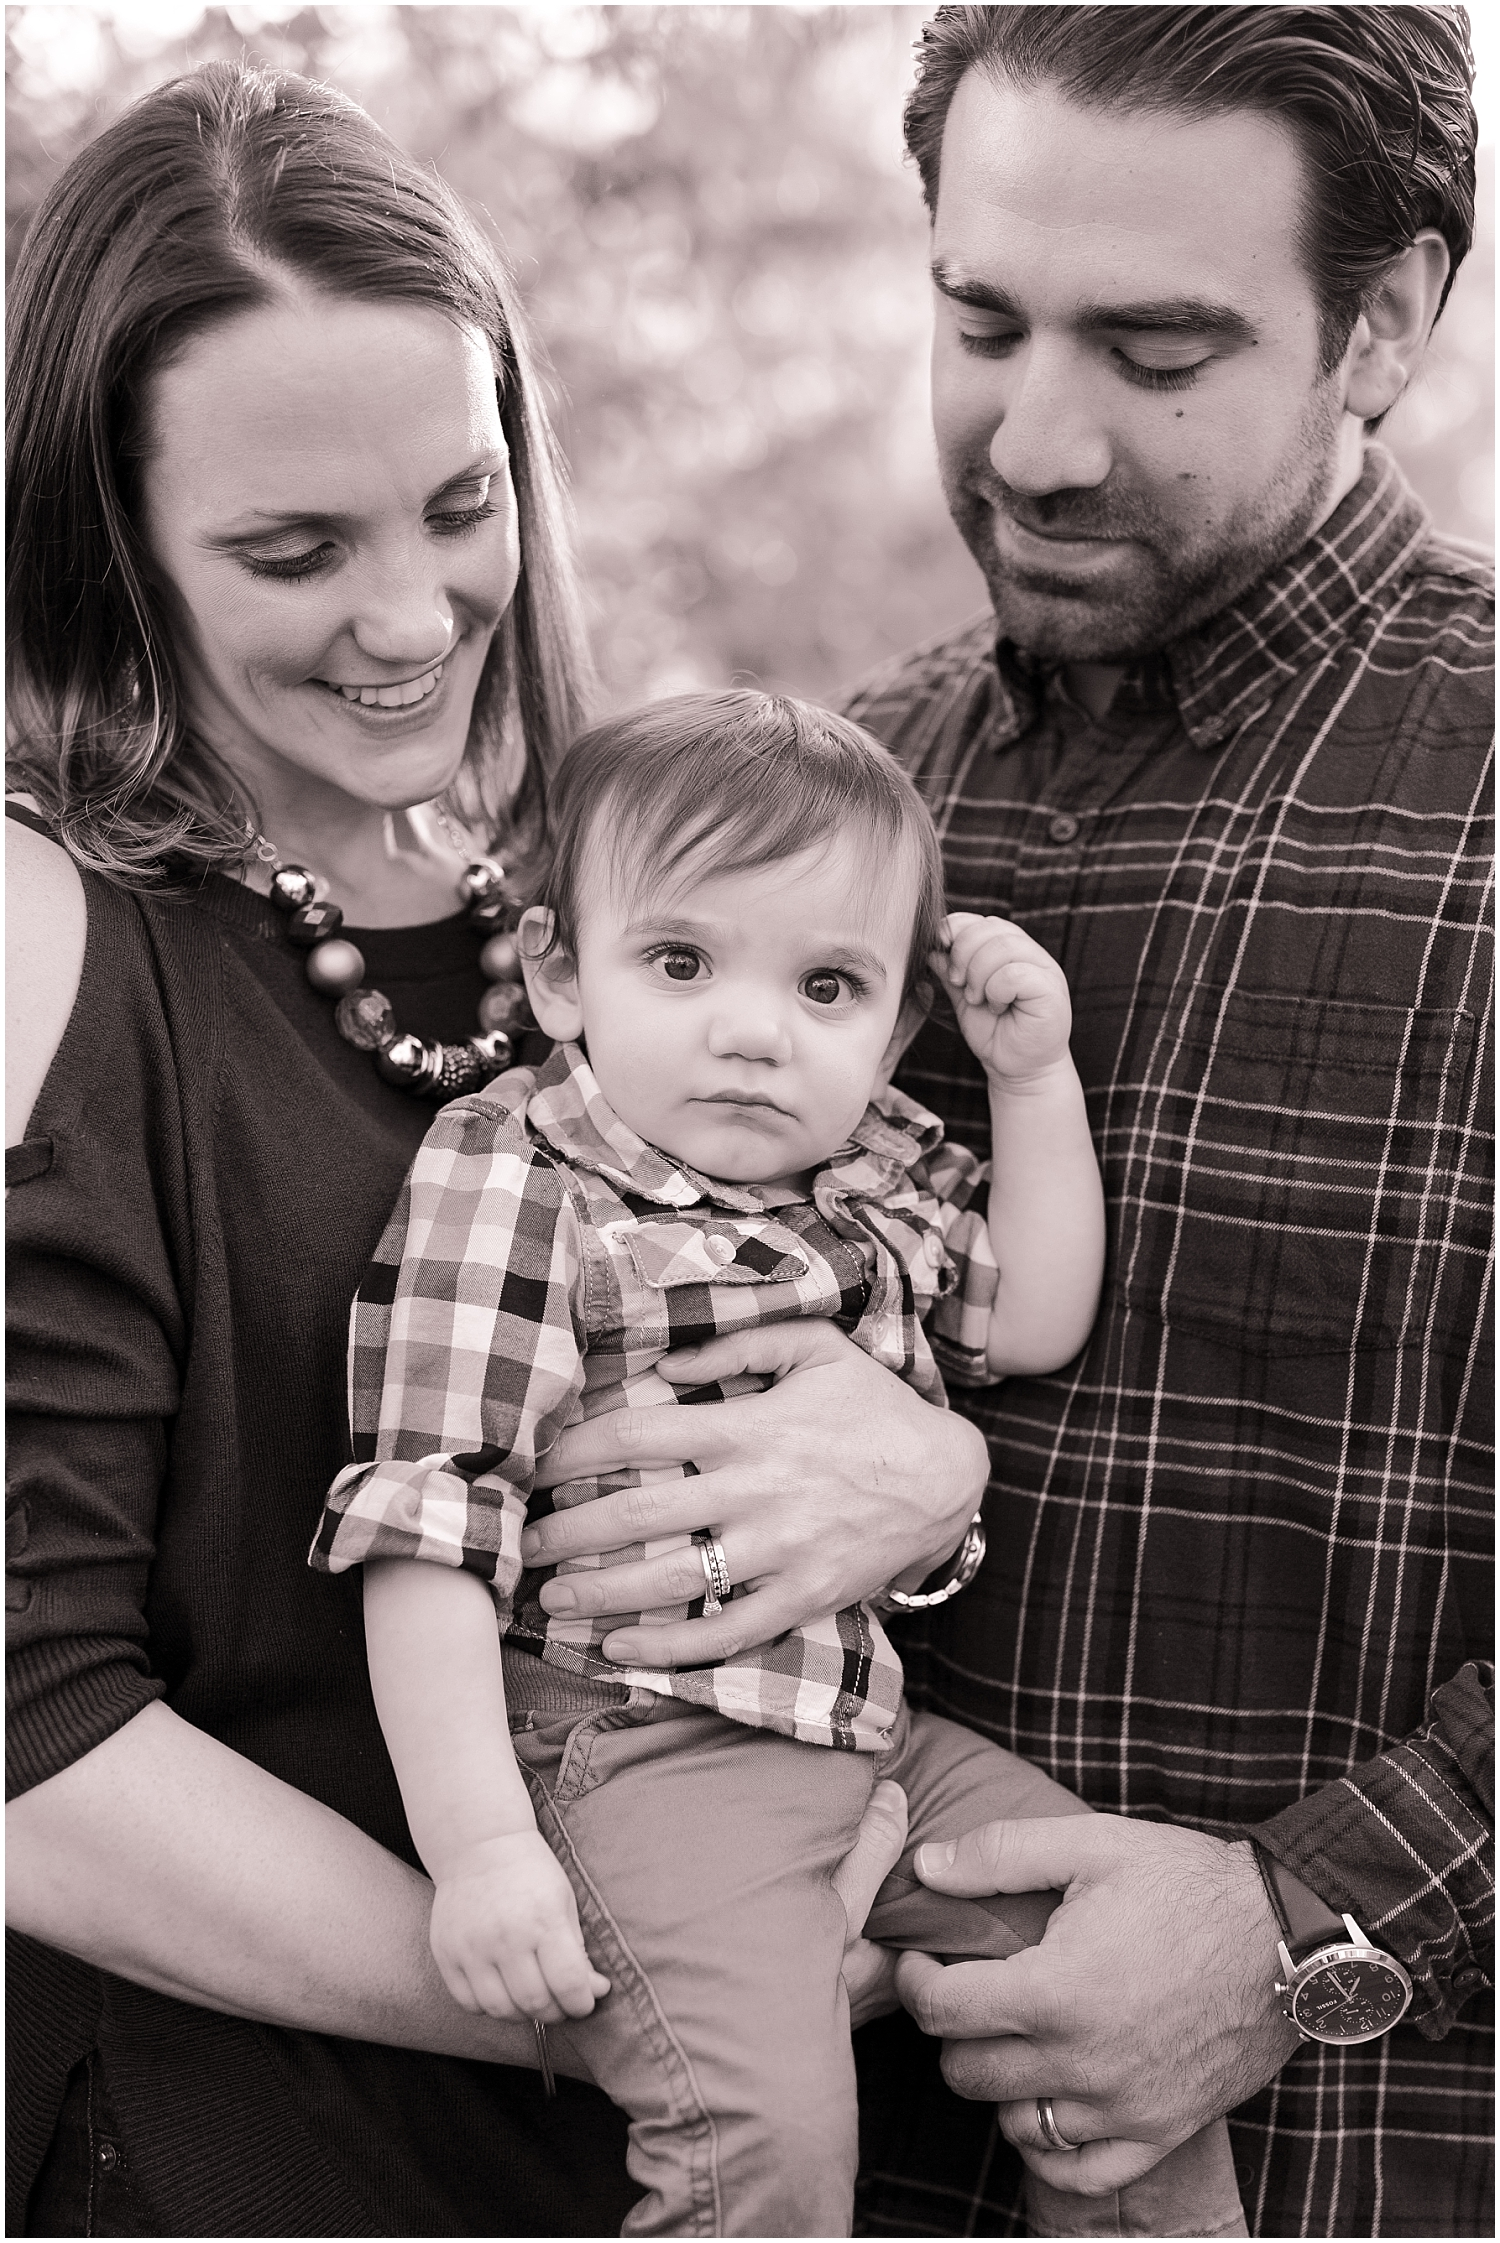 Midlothian VA Family Portrait Photographer (7).jpg